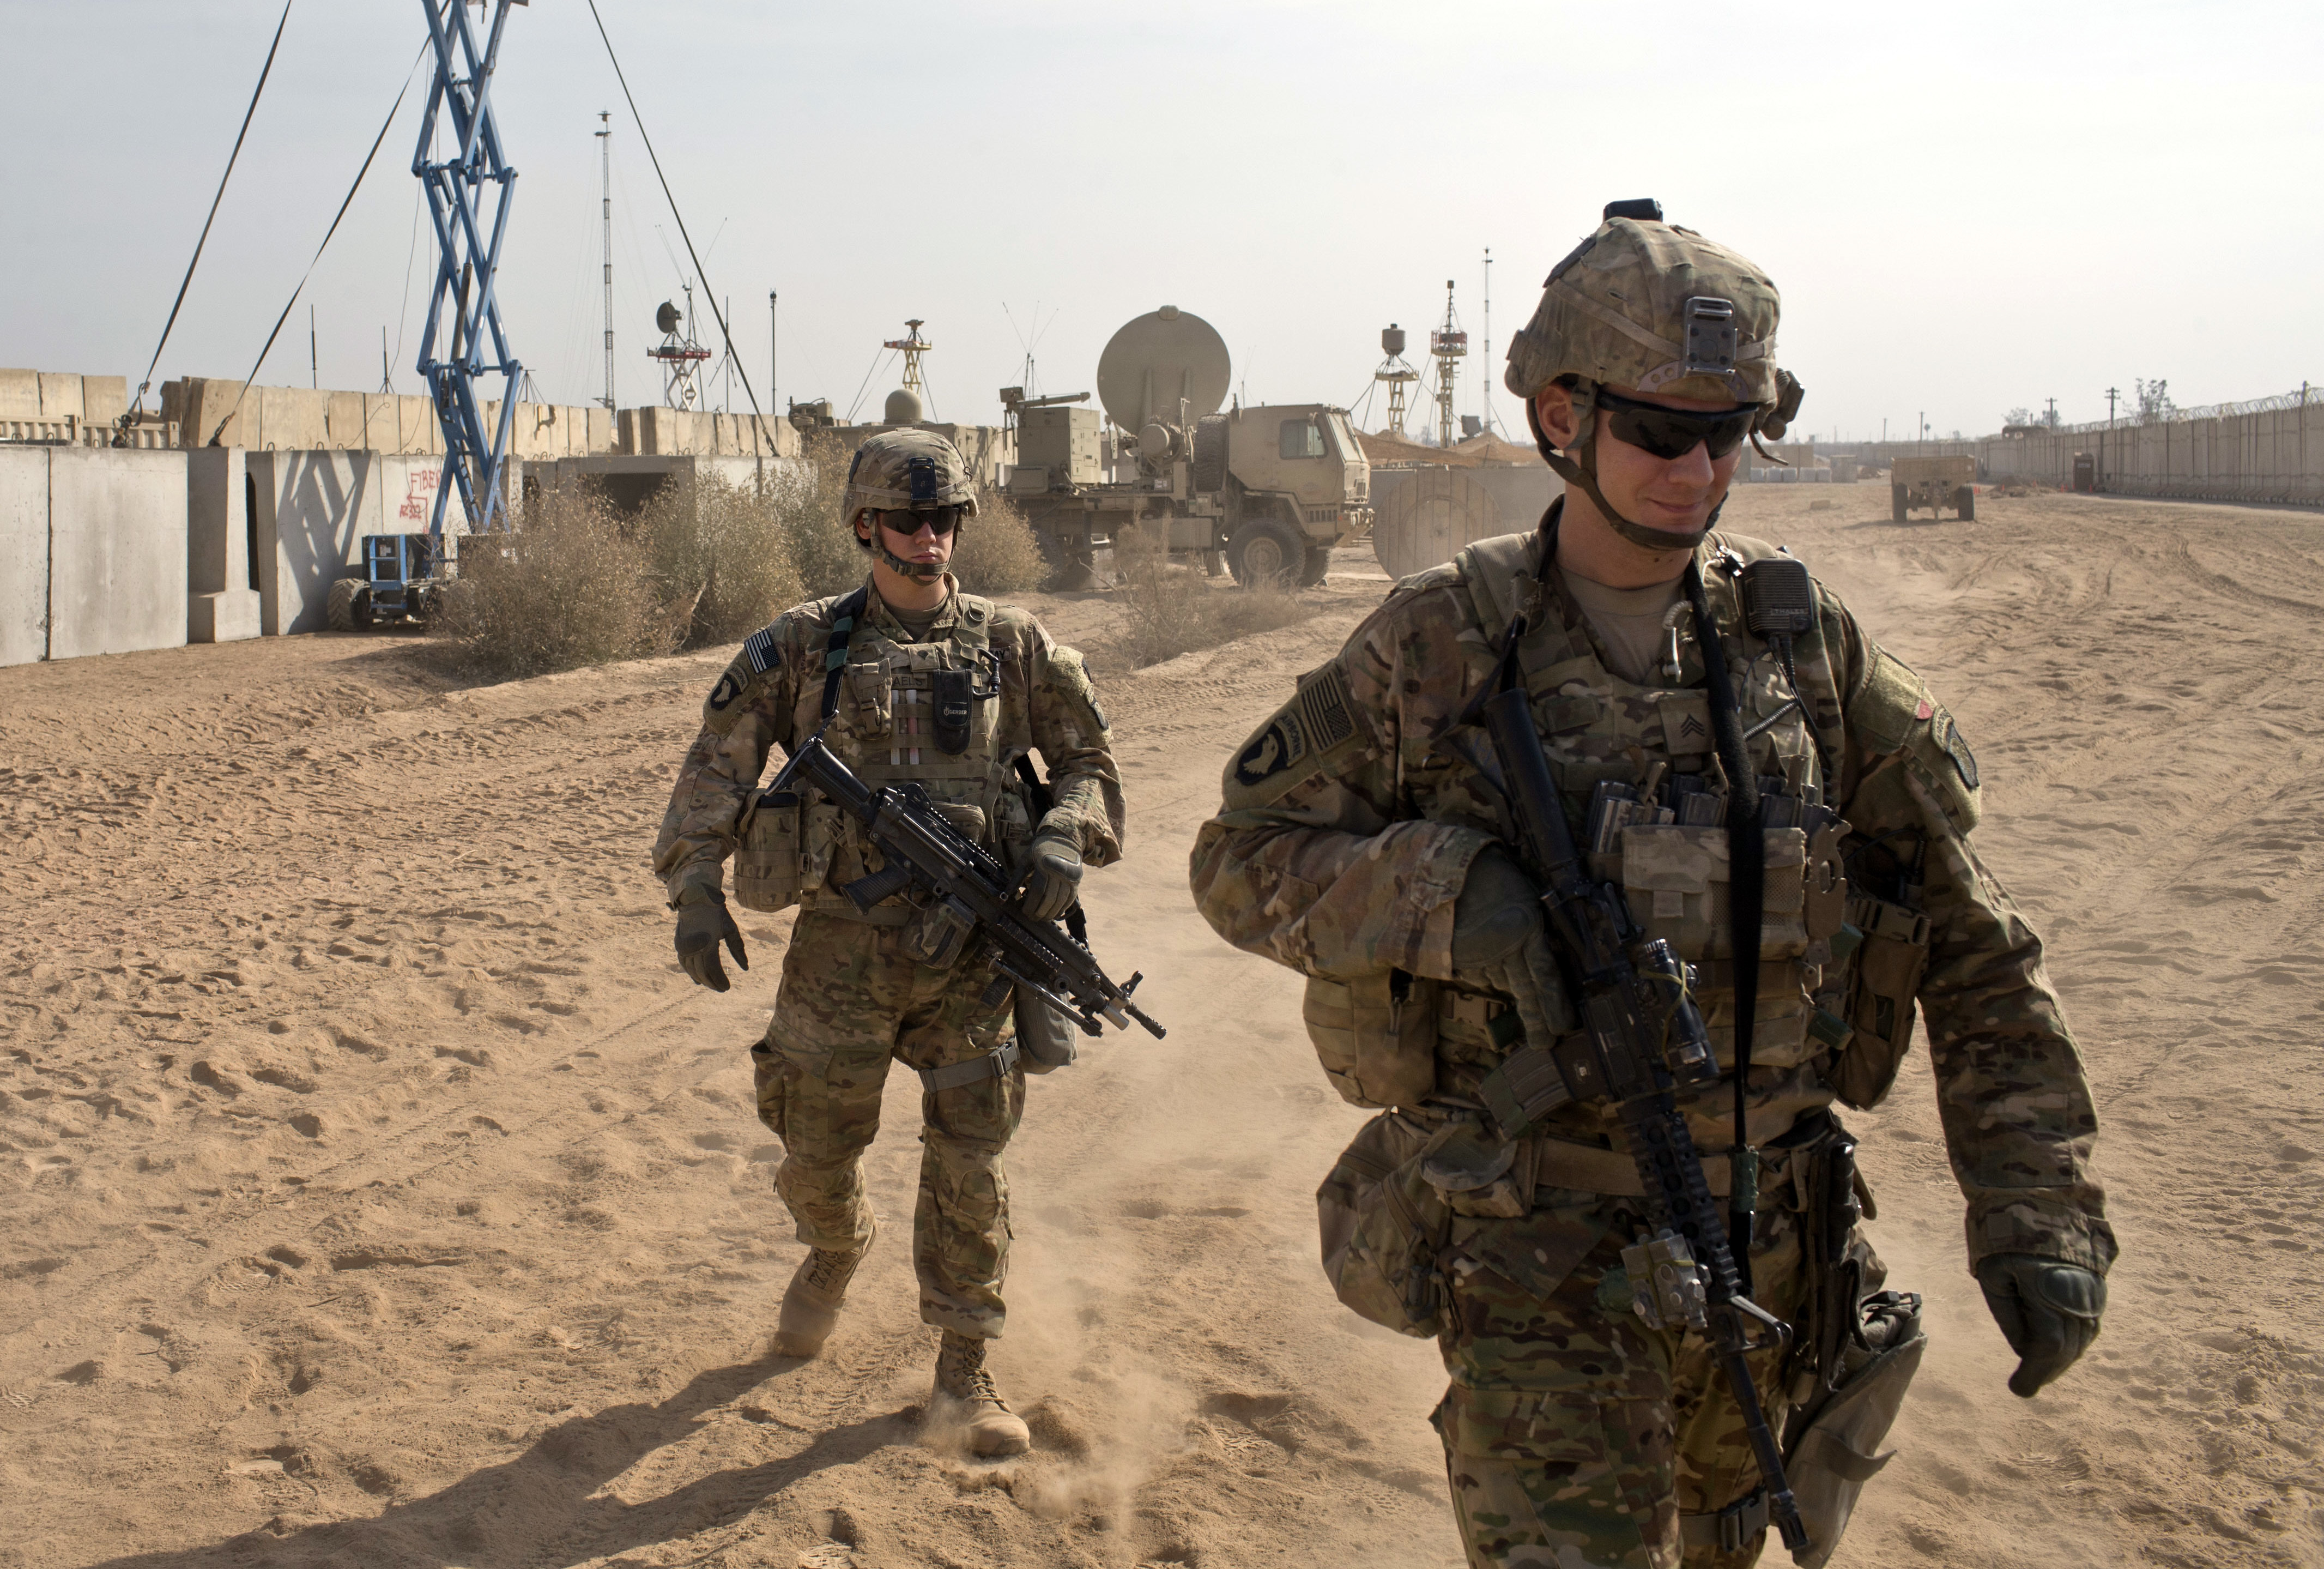 Iraq US FILE - In this Nov. 9, 2016 file photo, U.S. Army soldiers move through Qayara West Coalition base in Qayara, some 50 kilometers south of Mosul, Iraq. Reverberations from President Donald Trump's travel ban and other stances are threatening to undermine future U.S.-Iraqi security cooperation, rattling a key alliance that over the past two years has slowly beaten back the Islamic State group. Iraq's prime minister, Haider al-Abadi, has sought to contain public anger sparked by the ban and by Trump's repeated statements that the Americans should have taken Iraq's oil, as well as his hard line against Iran, a close ally of Baghdad. (AP Photo/Marko Drobnjakovic, File)